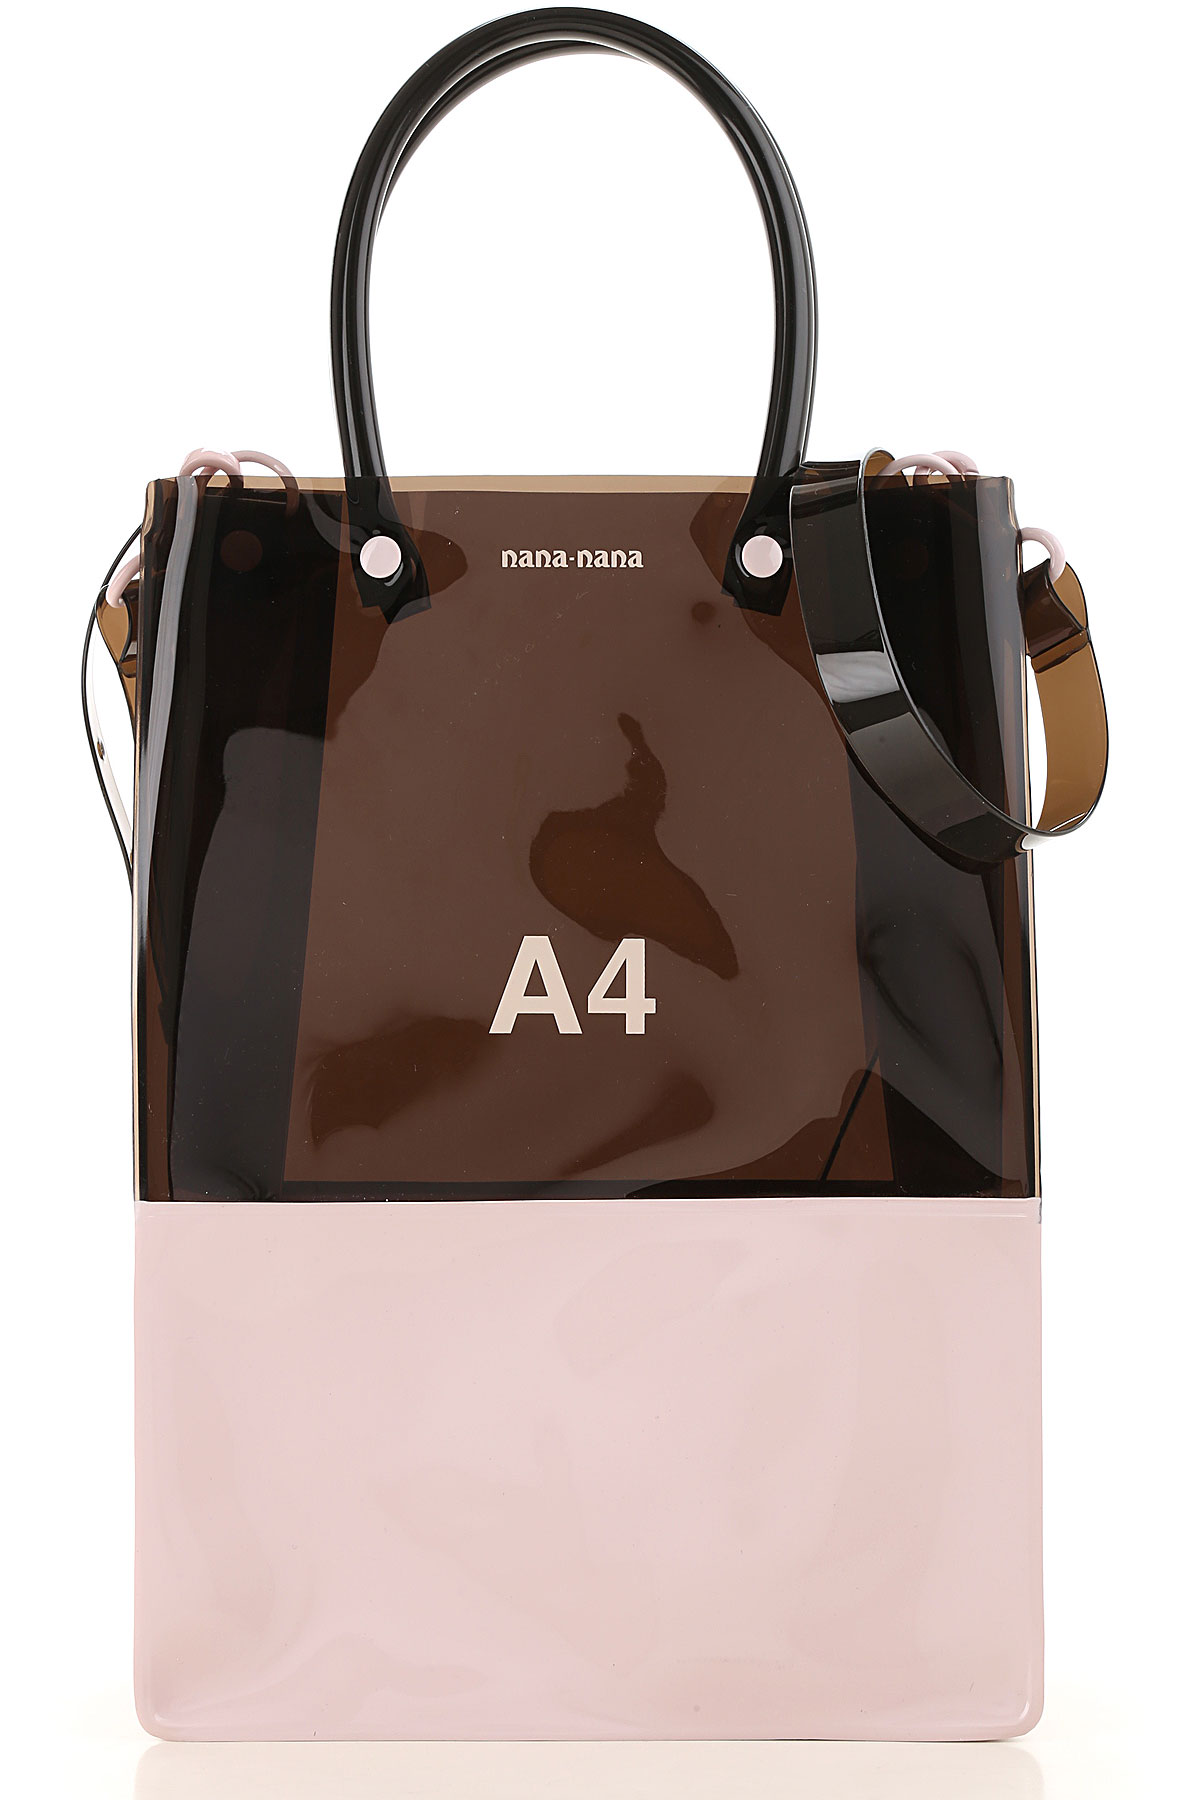 NANA NANA Top Handle Handbag On Sale, Black, PVC, 2019